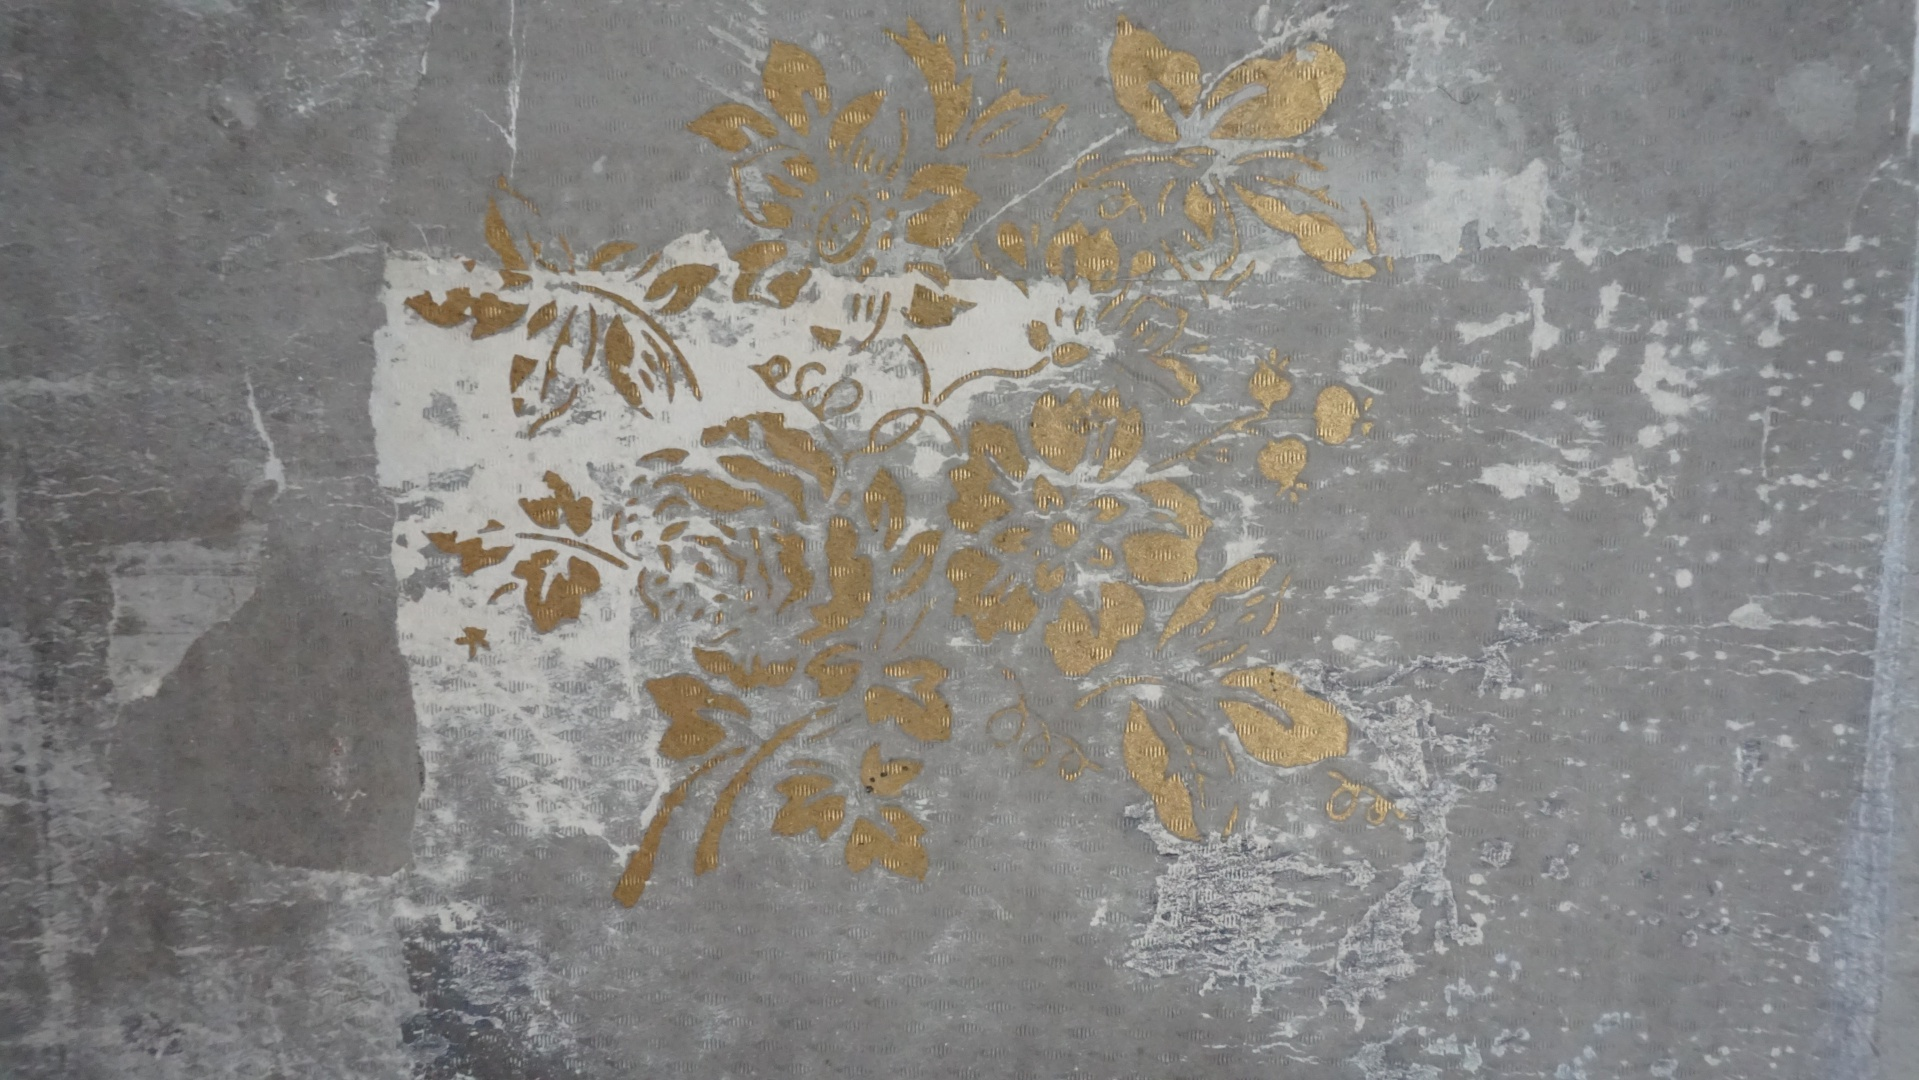 fig 35. Toning the grey wallpaper was done after it had been placed on the wall, so the local light conditions could be taken into account.